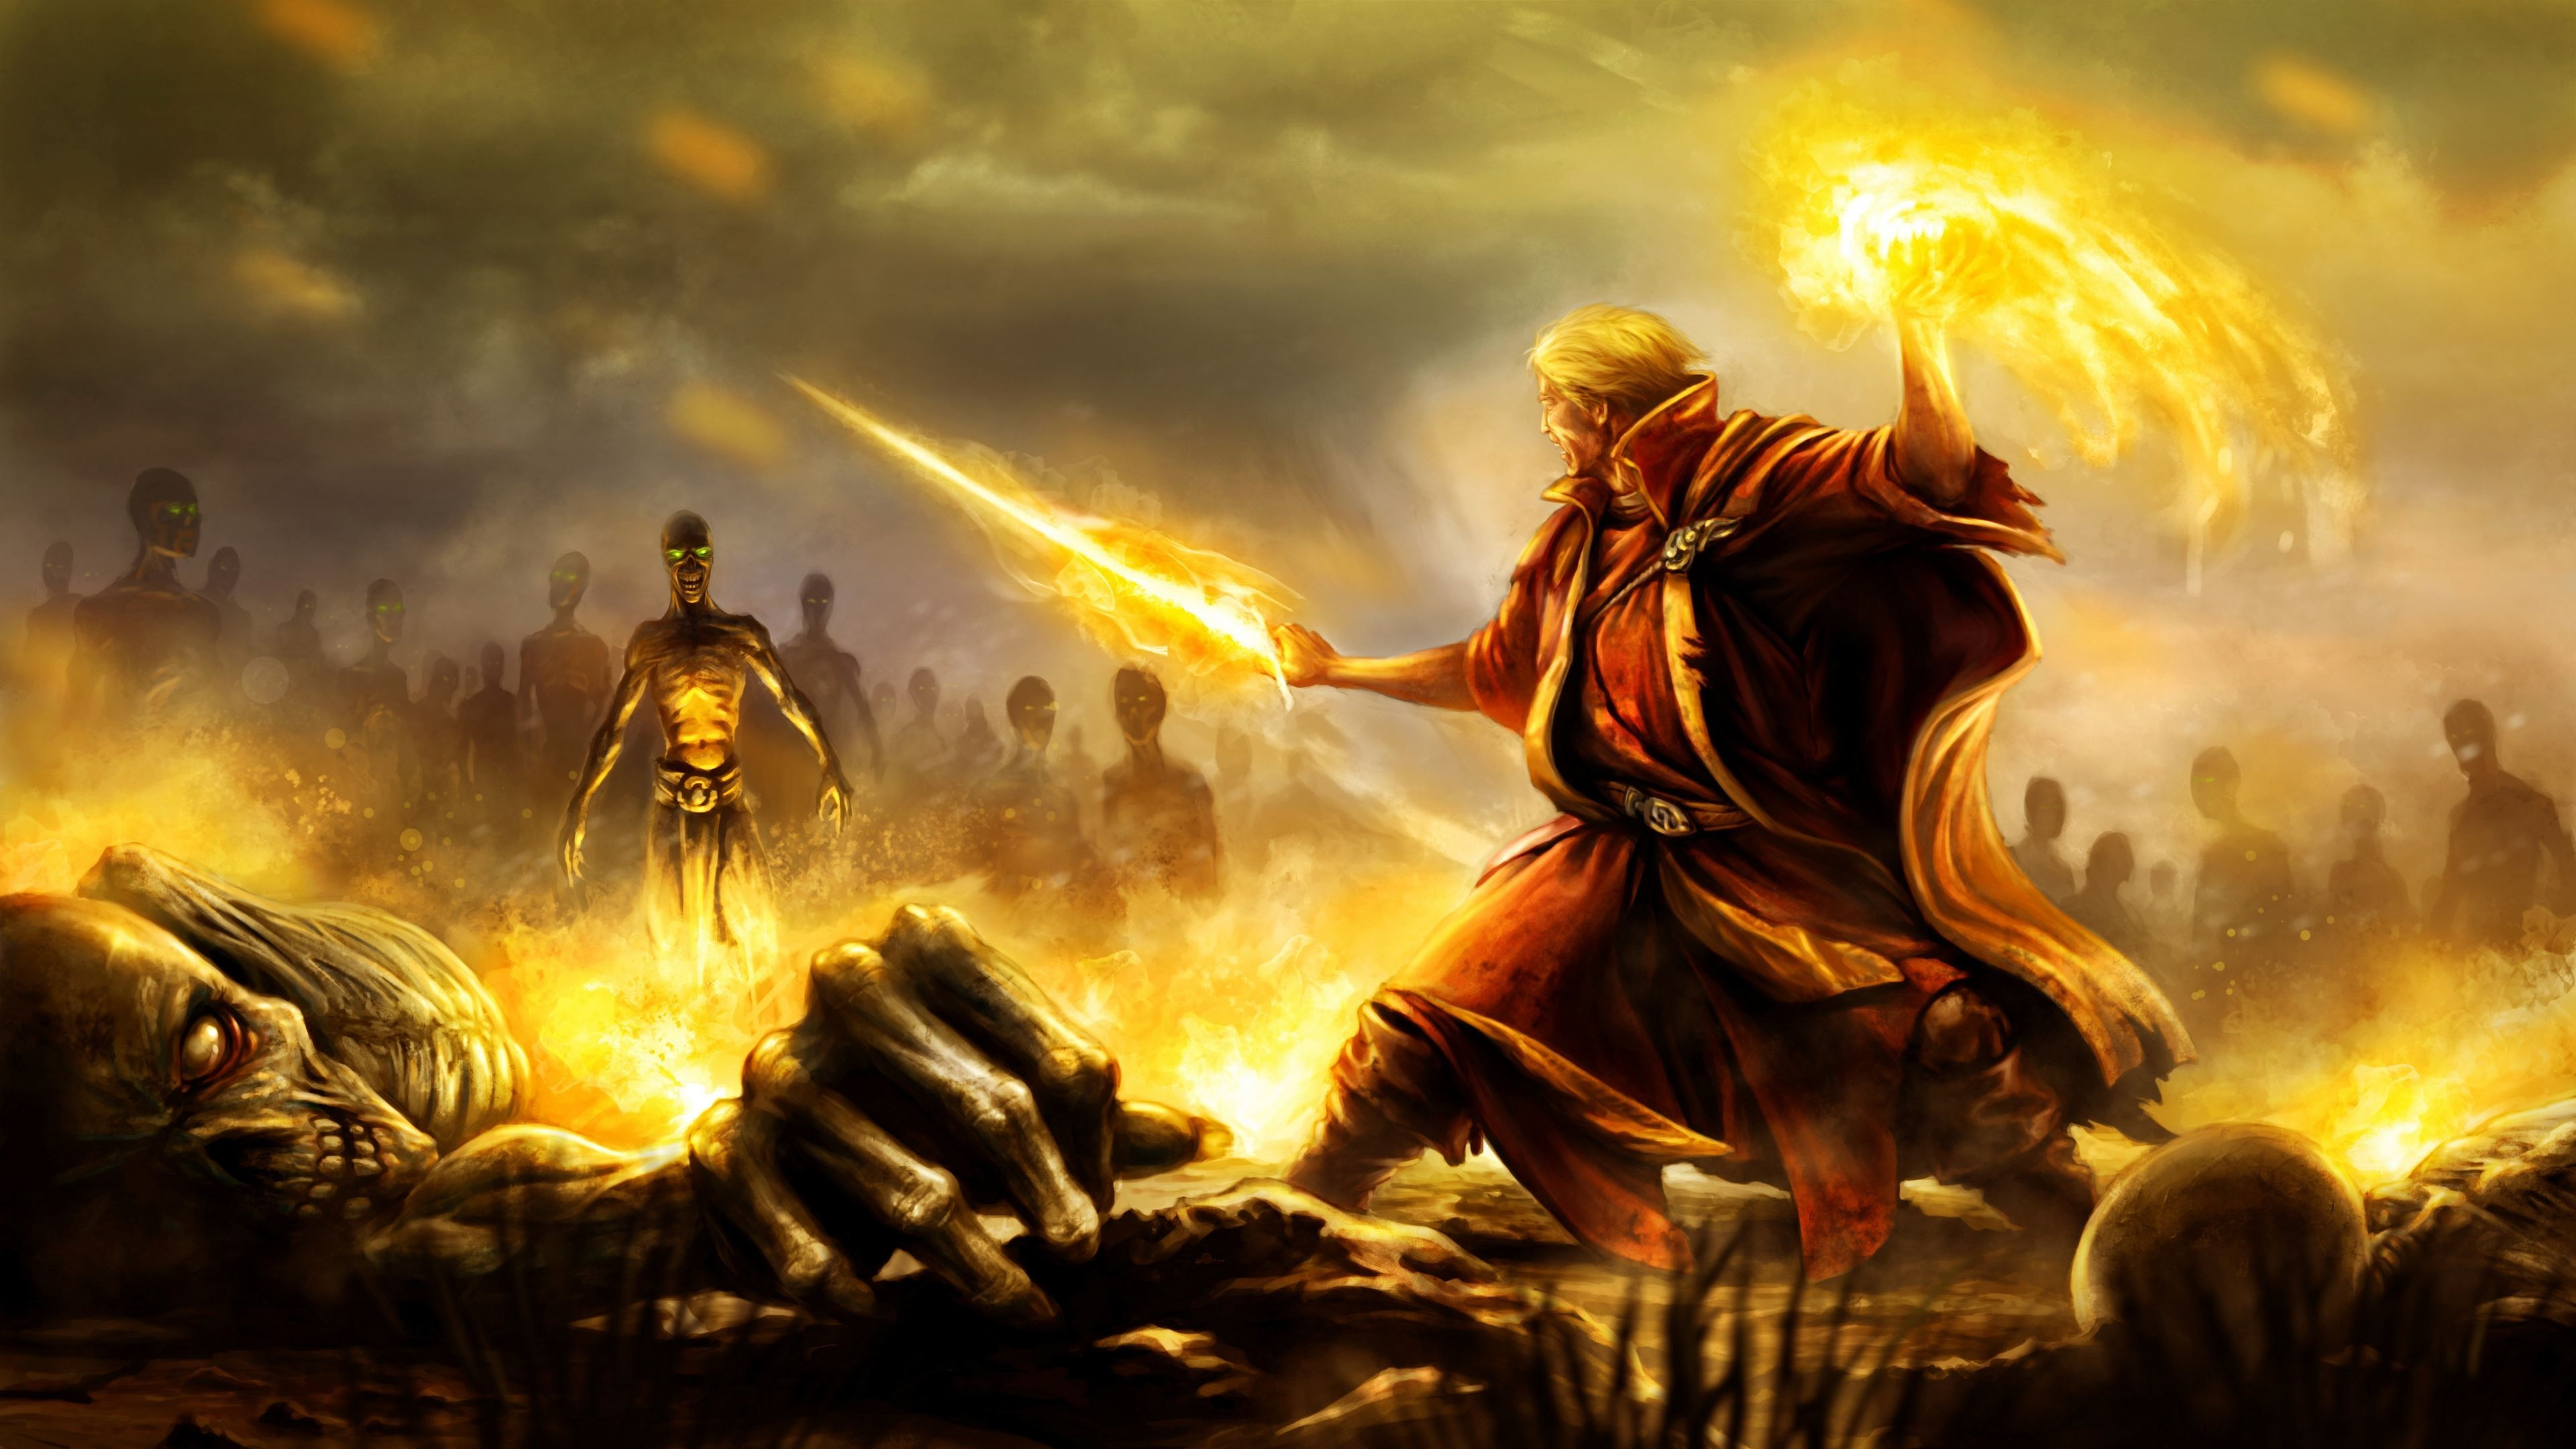 Battle Mage Art – Ultra HD Wallpaper. ImgPrix.com – High Definition  Wallpapers and